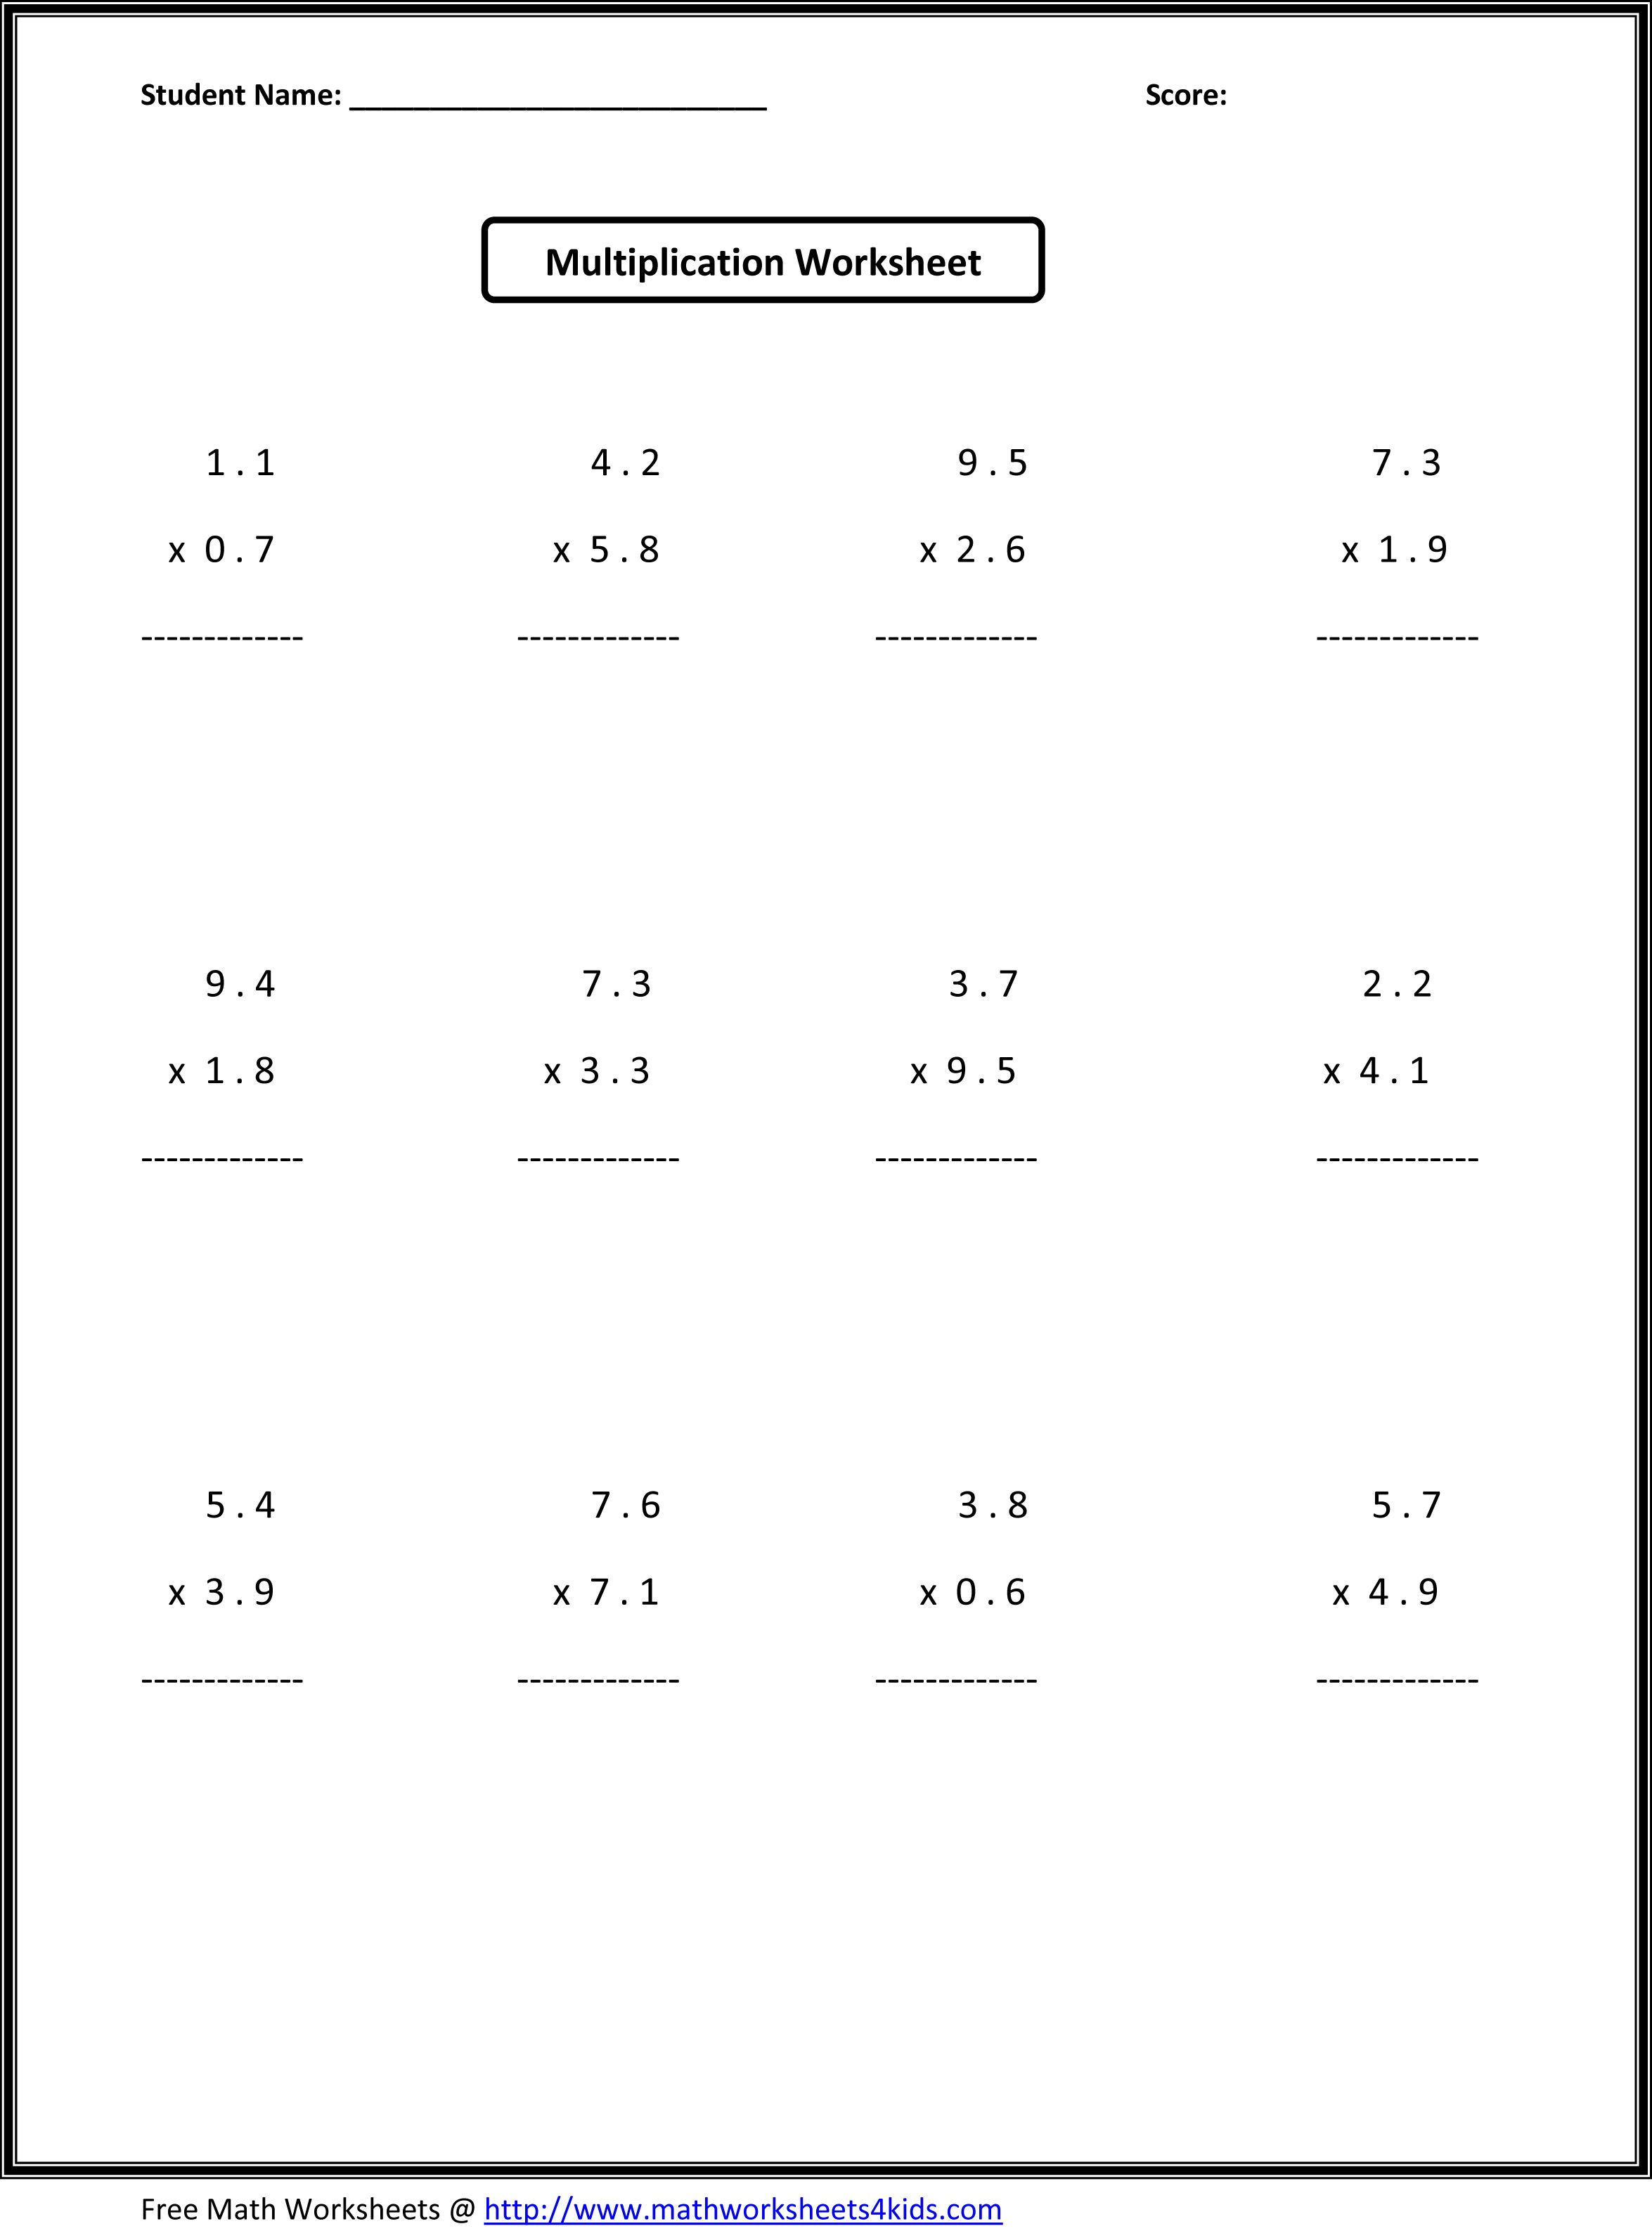 Math Decimals Worksheets Math Riddles 4th 5th 6th 7th Grade – Order of Operations with Decimals Worksheets